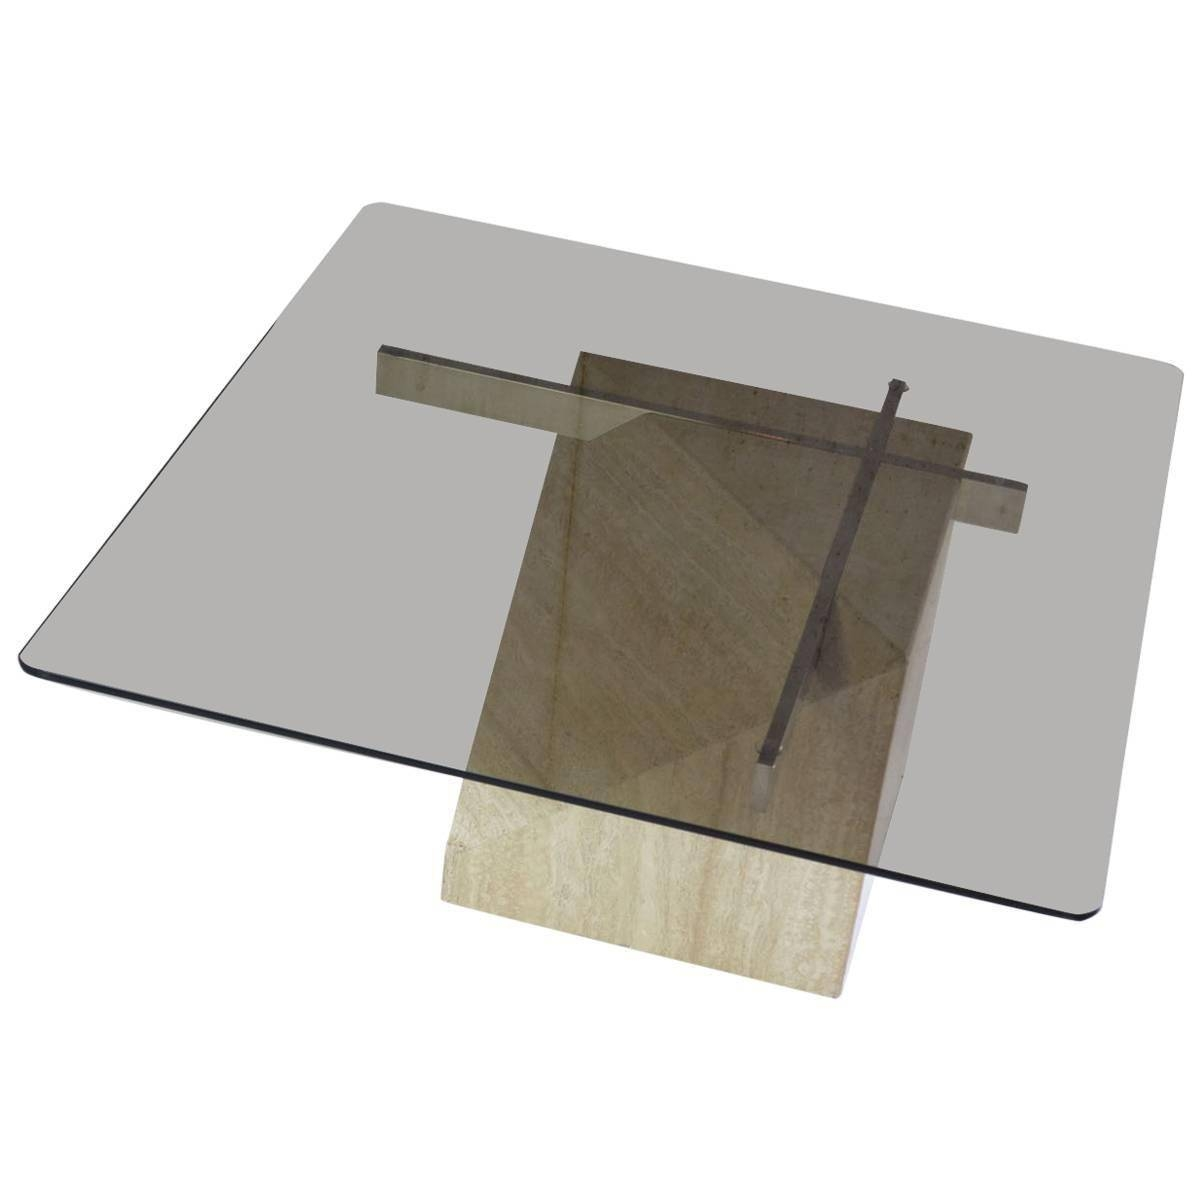 Perfect Marble Base Glass Top Coffee Table 82 For Home Decorating intended for Marble Base Glass Top Coffee Table (Image 15 of 15)